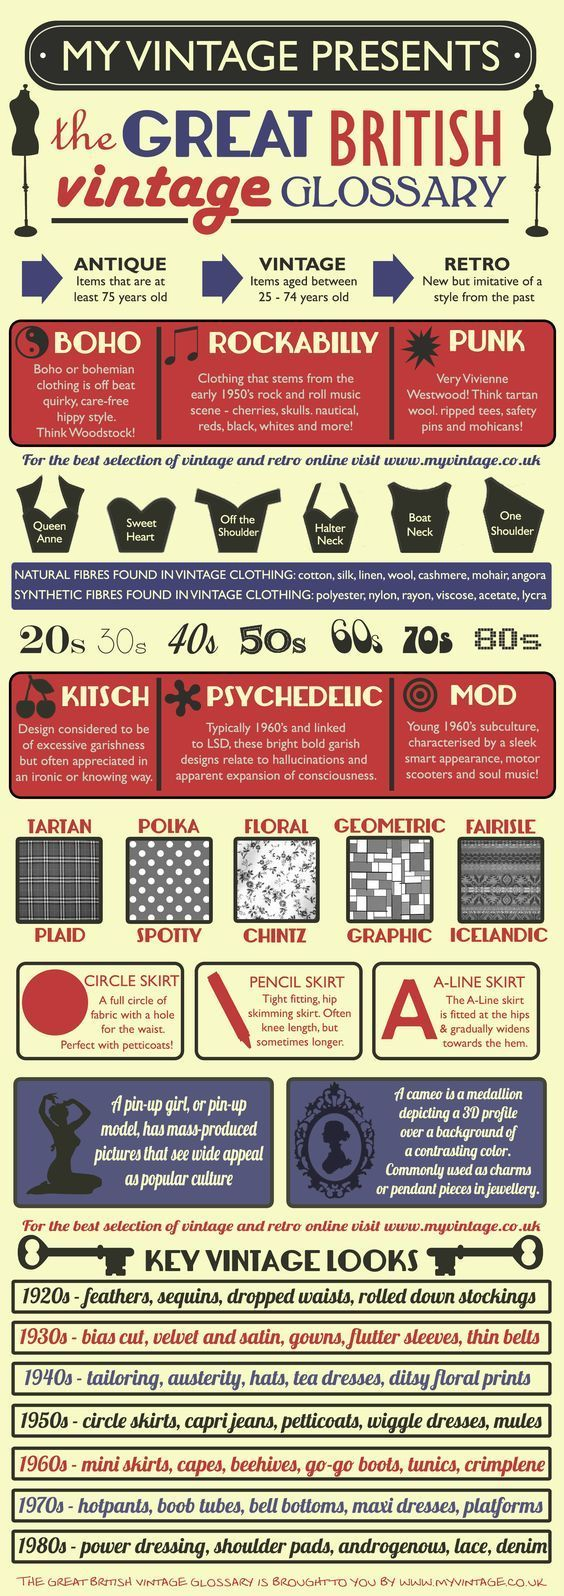 The Vintage Glossary from My Vintage - your one stop guide to vintage clothing, retro clothing and rockabilly fashion. Brought to you by www.myvintage.co.uk 40s 50s 60s 70s 80s and more!